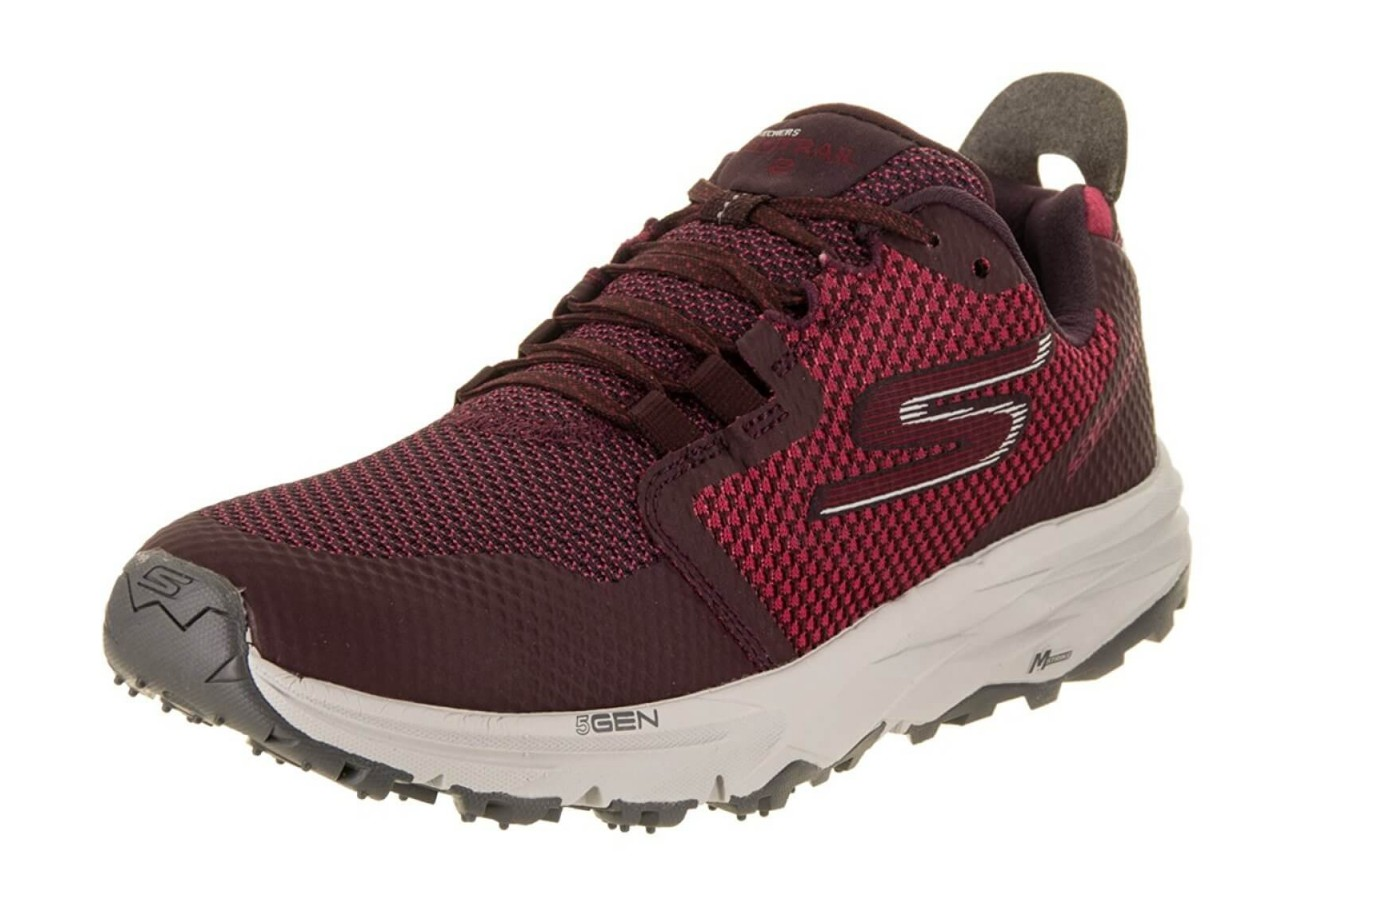 The Skechers GOTrail 2 side front angled perspective